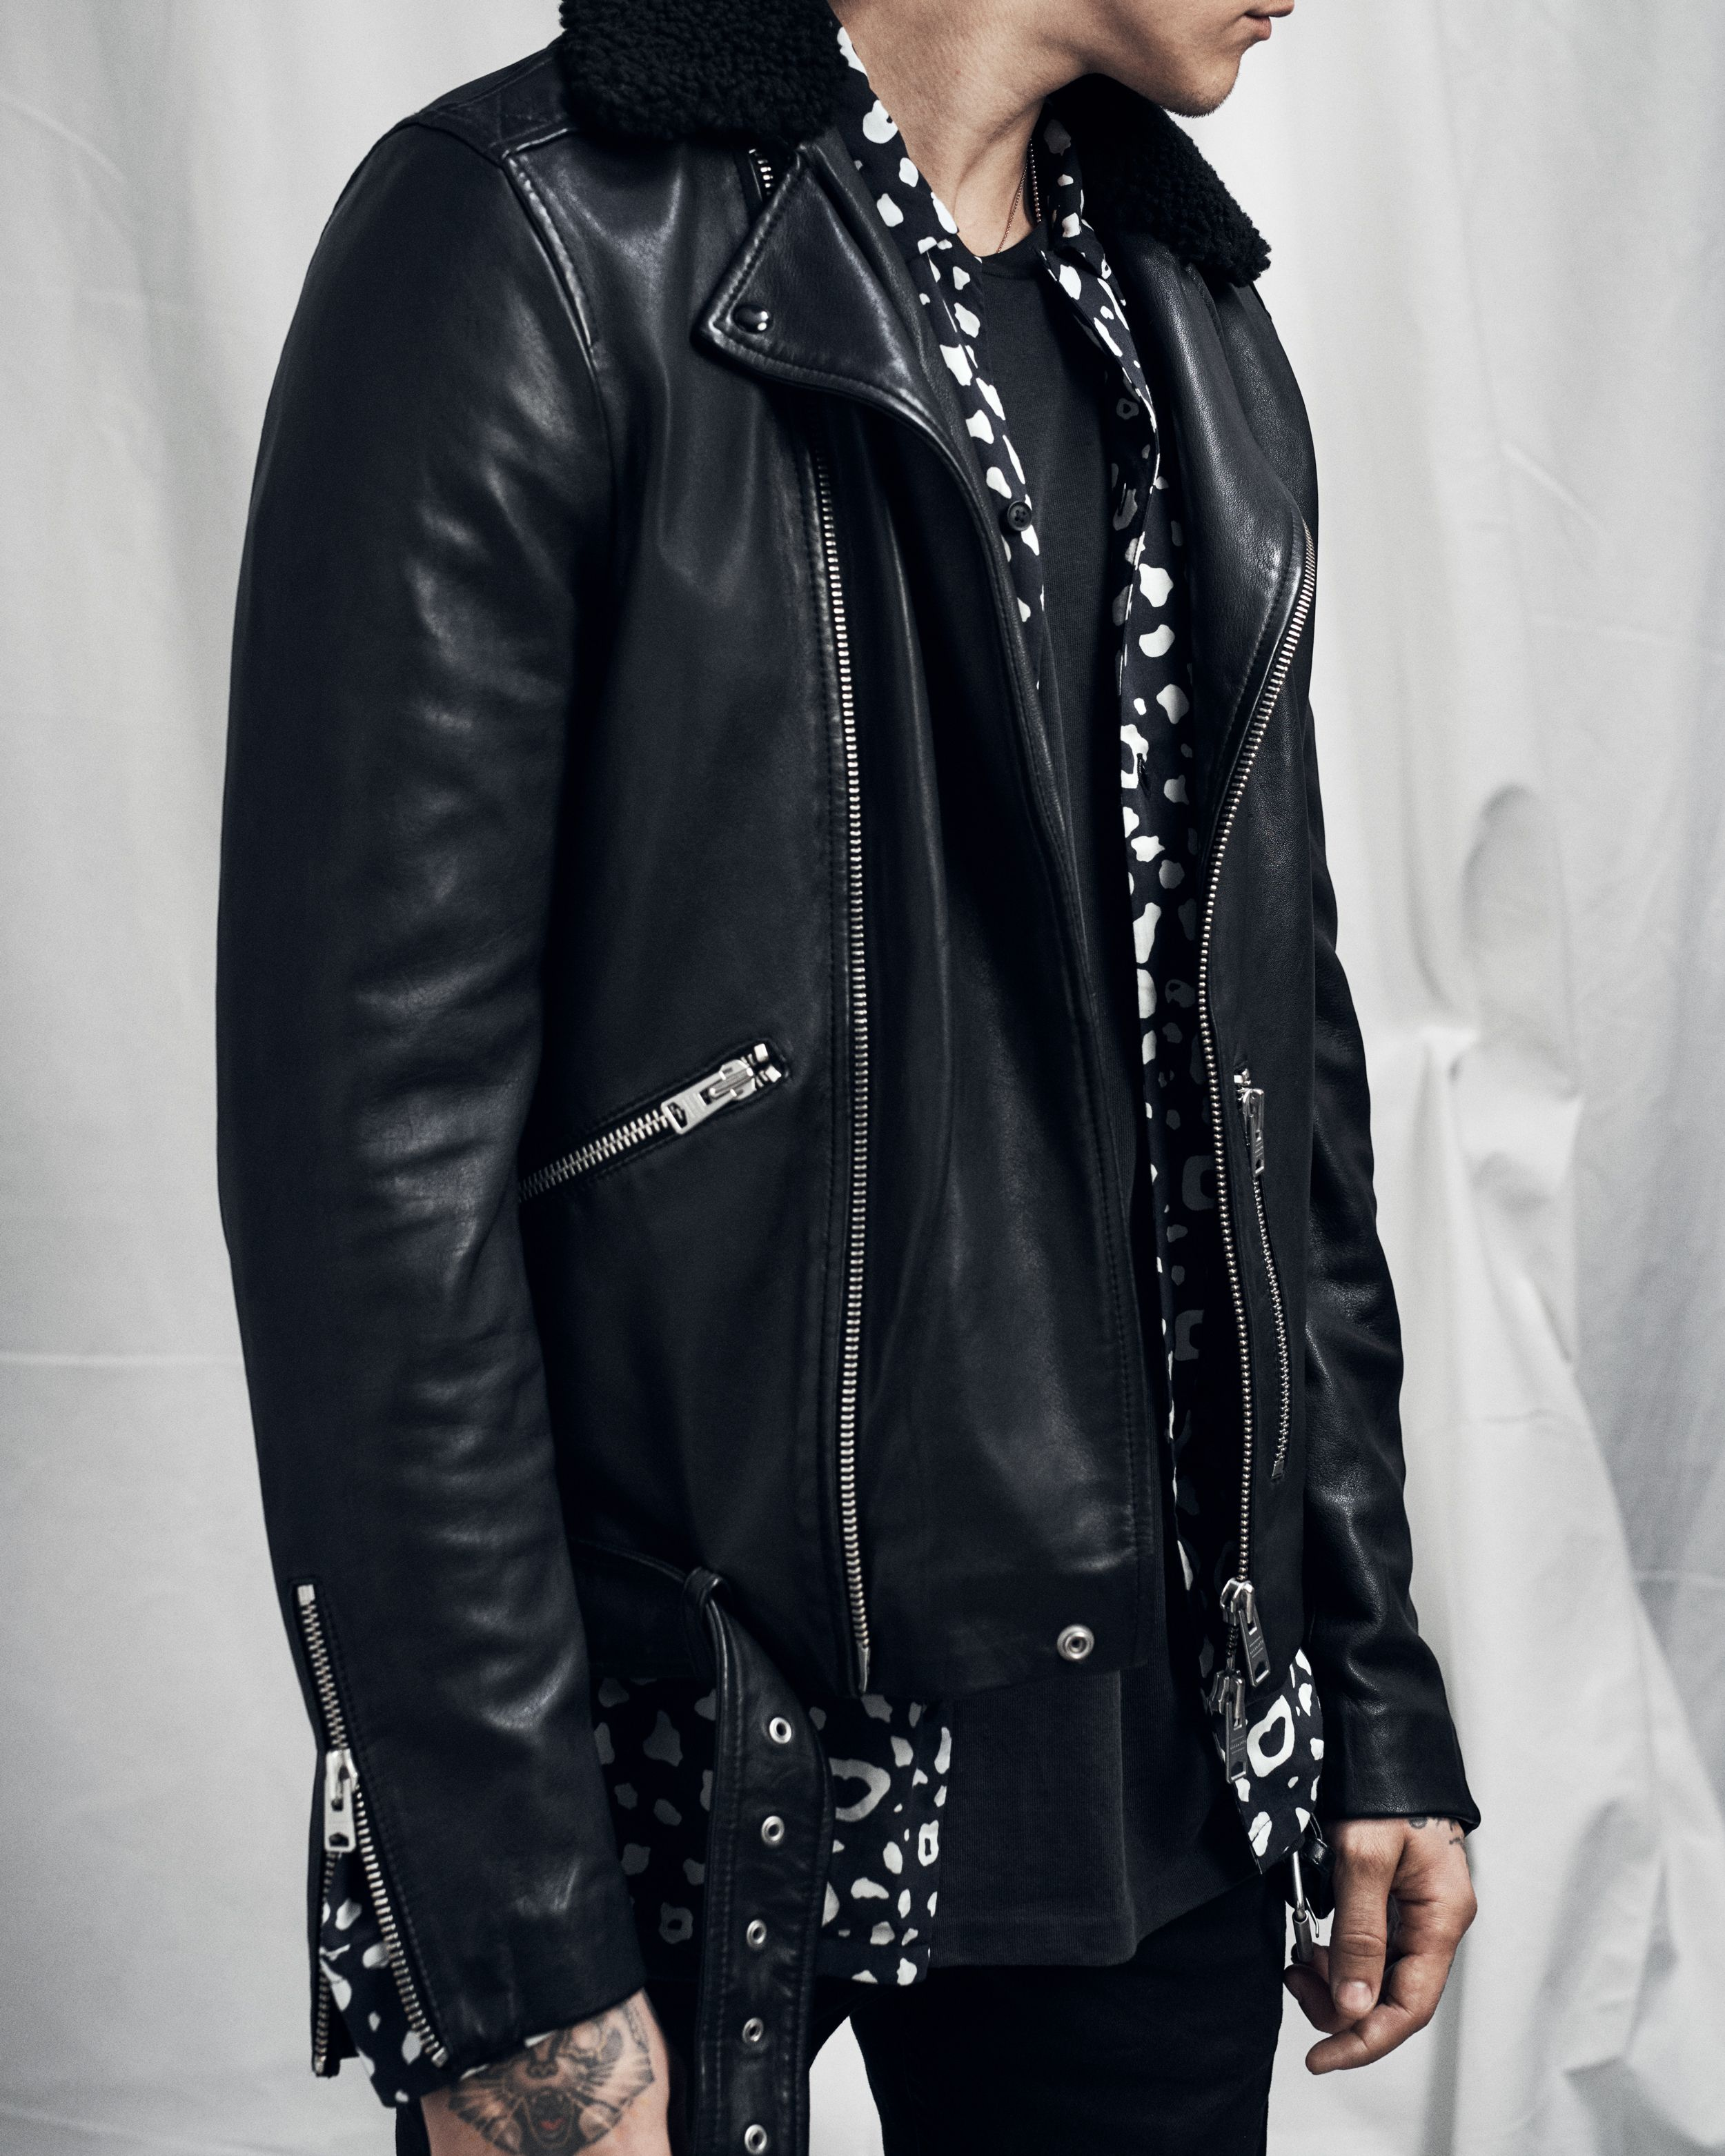 The Hawk Leather Biker Our Classic Biker Jacket Template Has Been Given A Cold Weather Trim With A Shearl Fur Leather Jacket Leather Jacket Leather Jacket Men